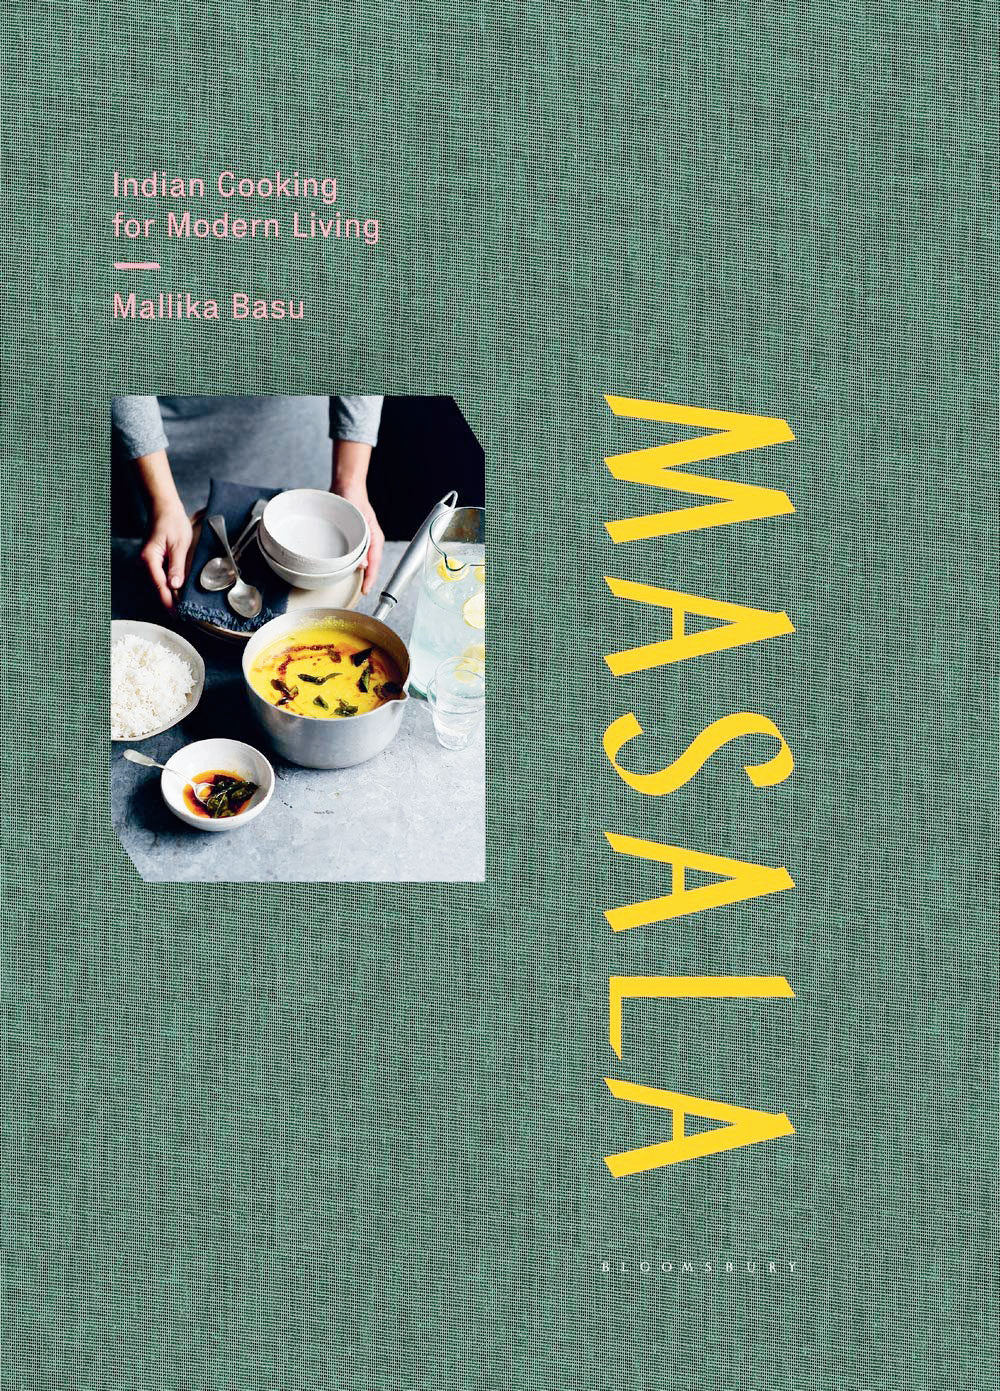 Masala is published by Bloomsbury